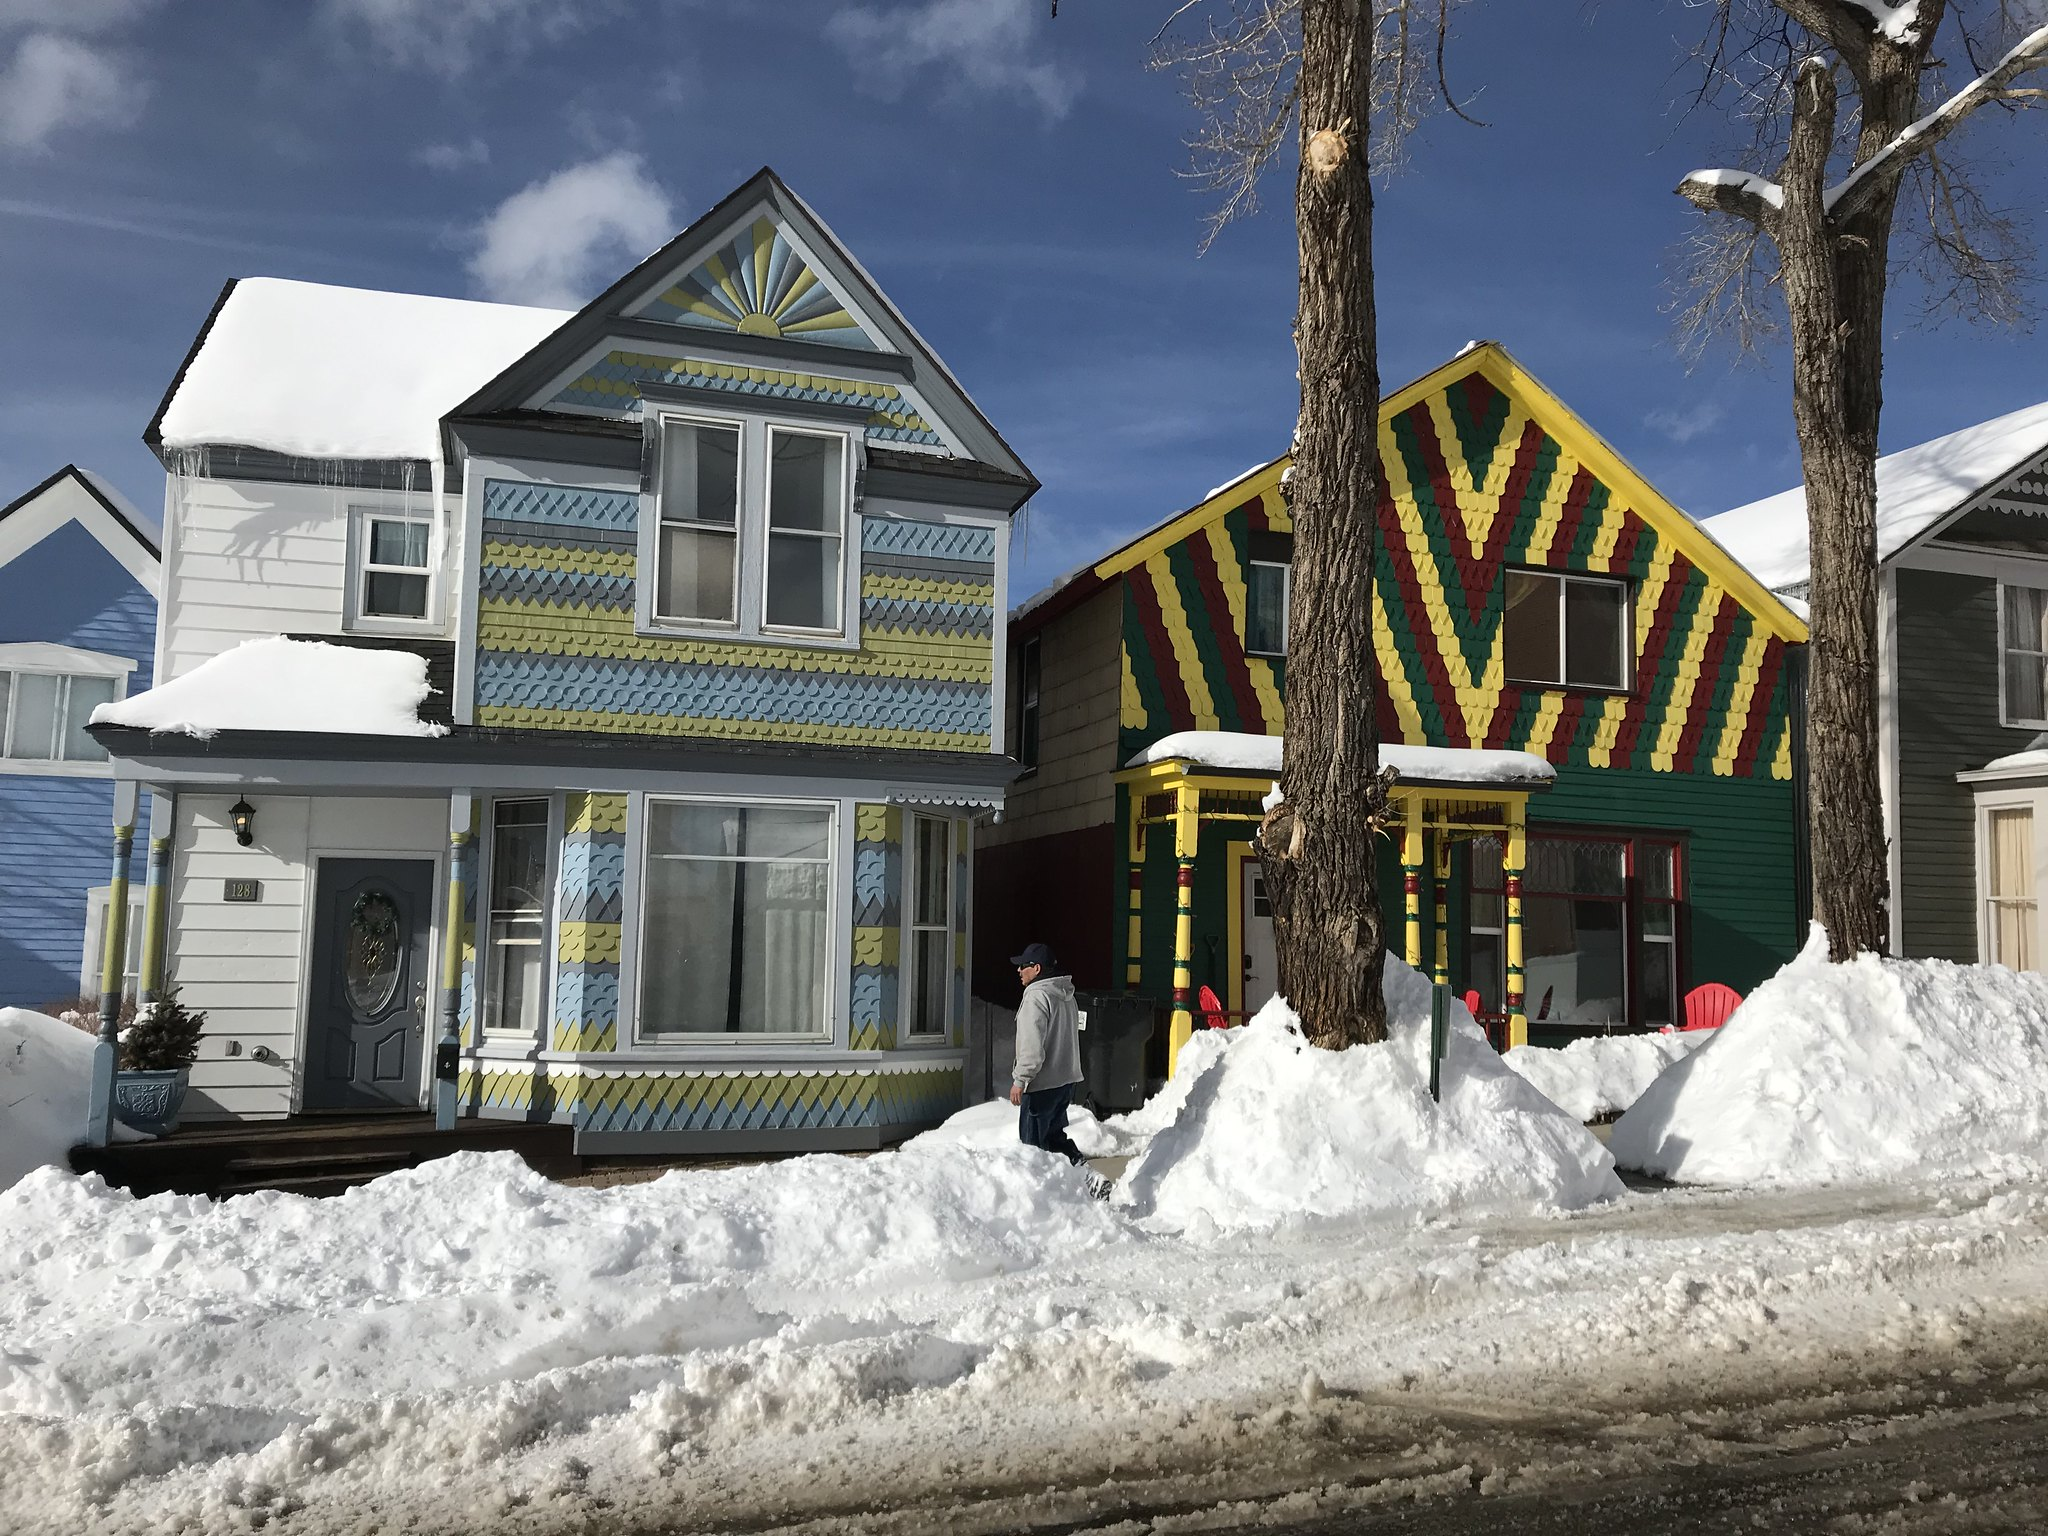 Two colourful houses on a snowy street